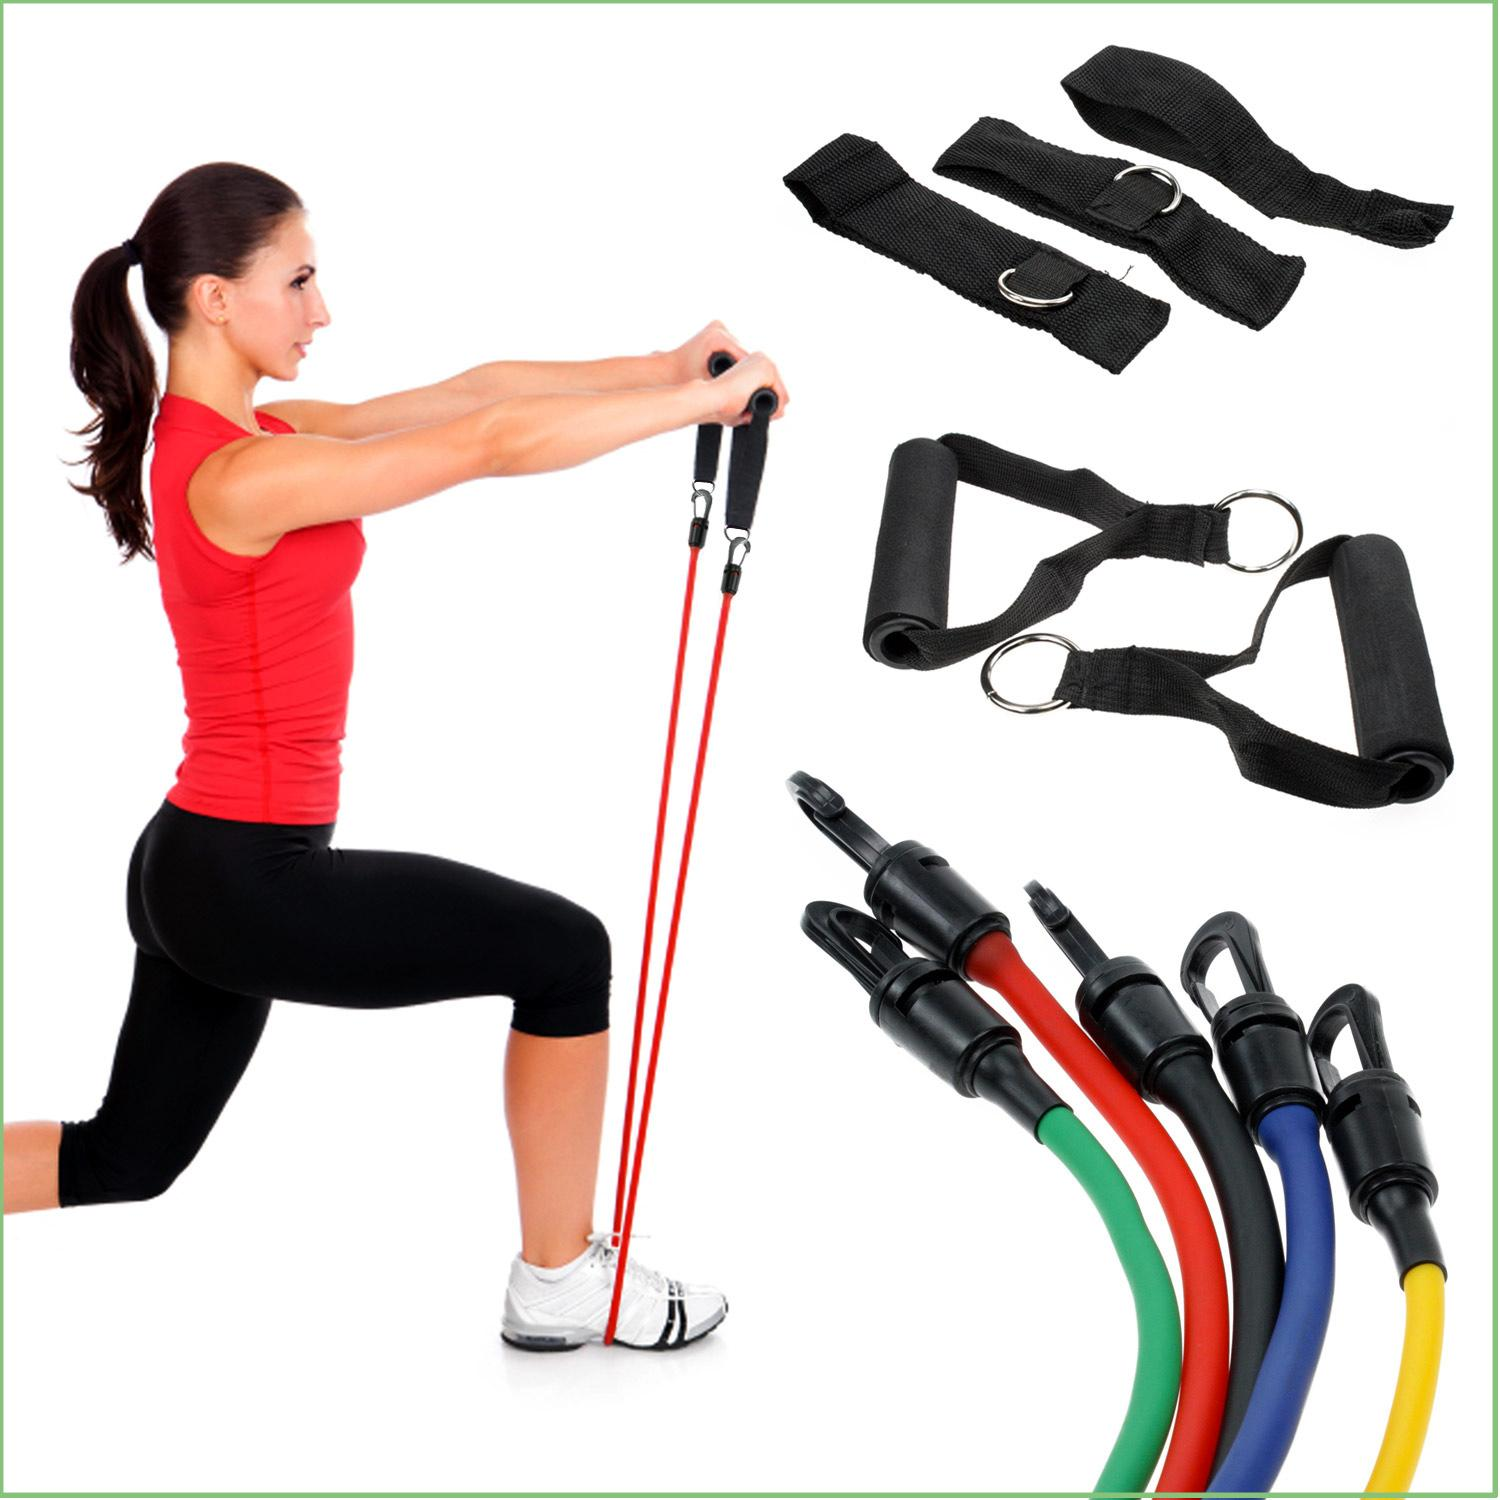 Workout Bands Com: RESISTANCE BANDS 11 PCS FITNESS EXERCISE LATEX TUBE X 90 P